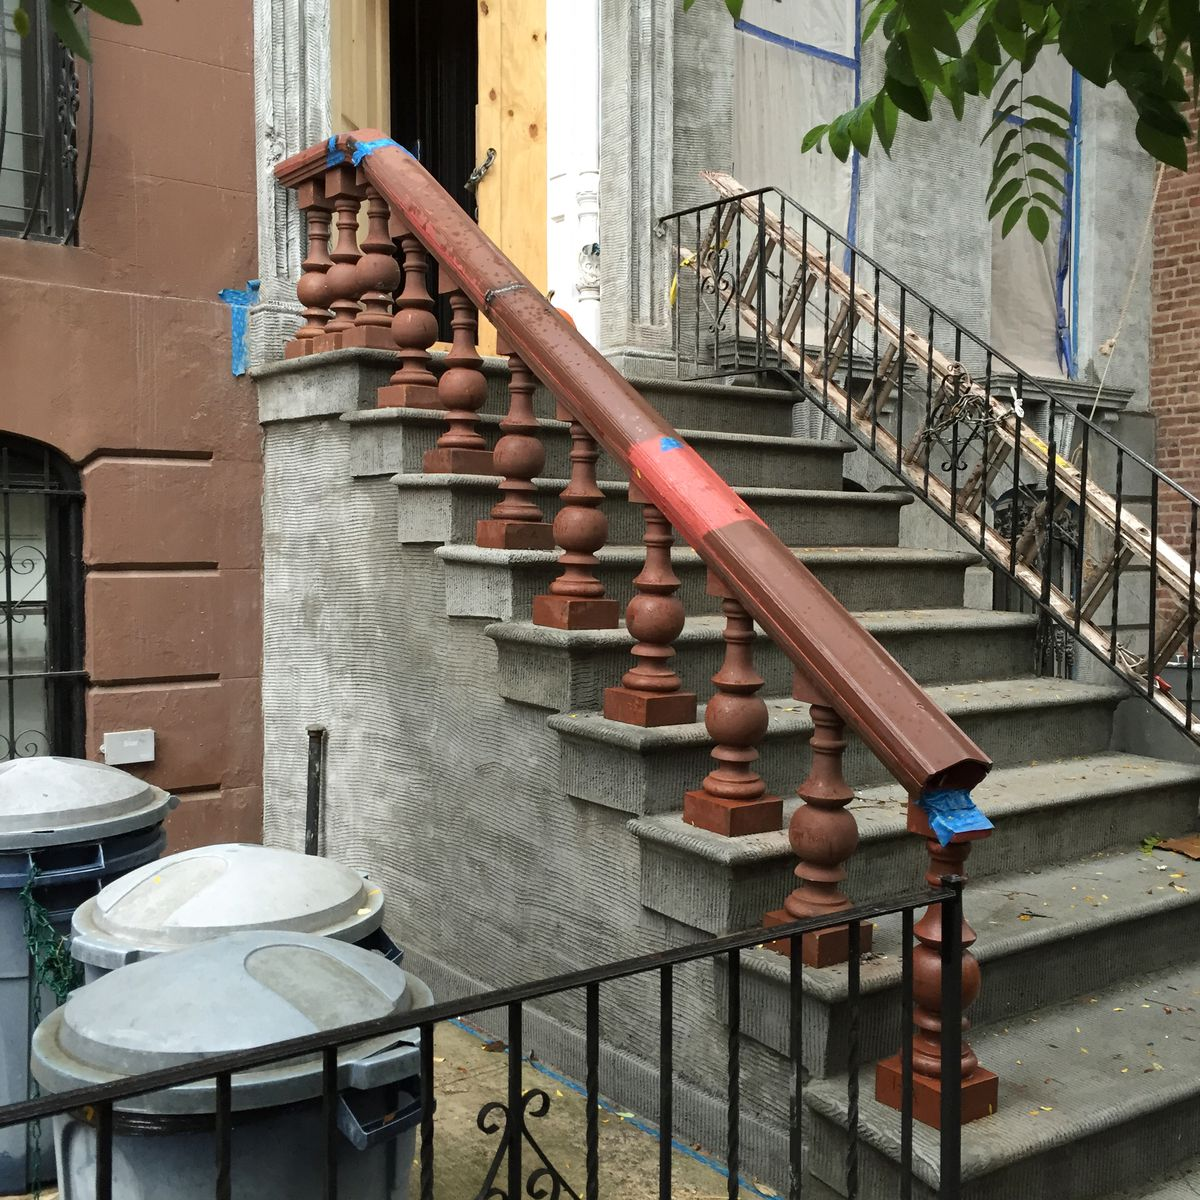 The balusters for the stoop stair were fabricated in China.